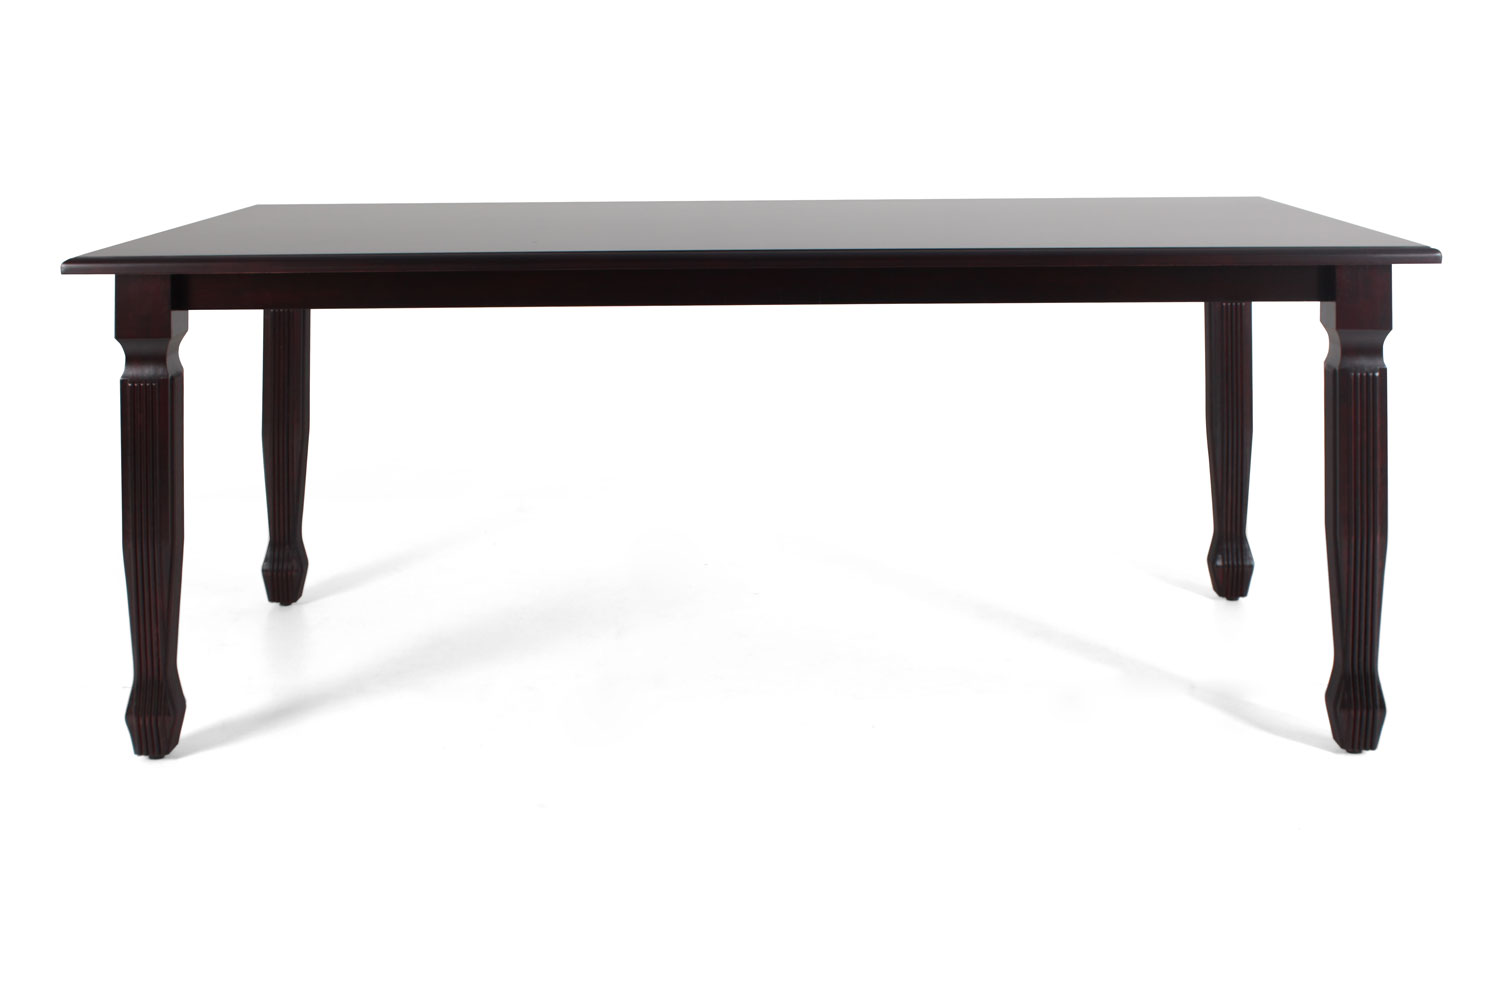 Dayton 6 seater dining table modfurn south india 39 s for Shop dining tables